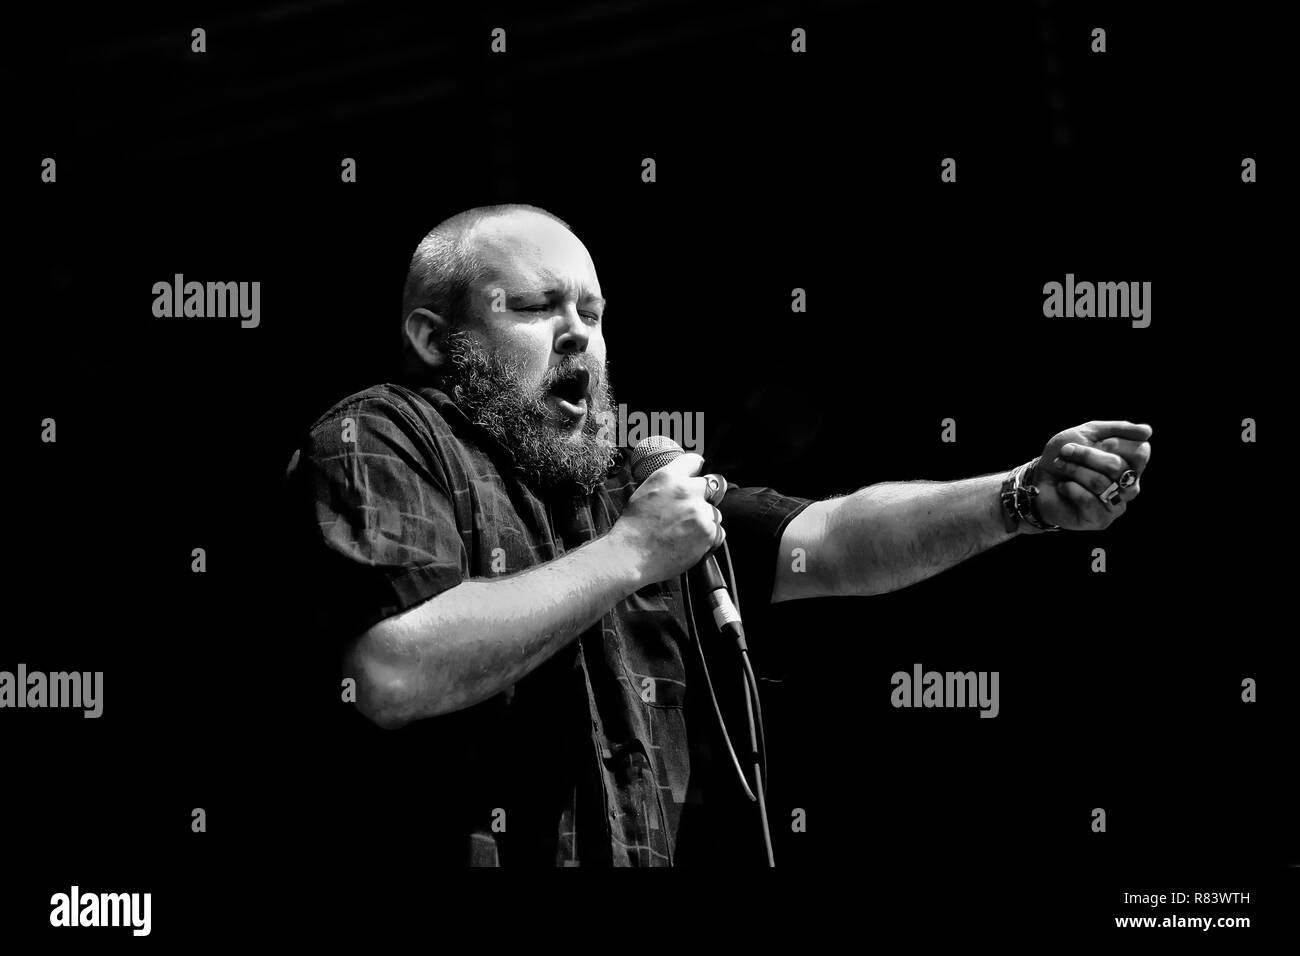 Richard Dawson live at the End of The Road festival. - Stock Image